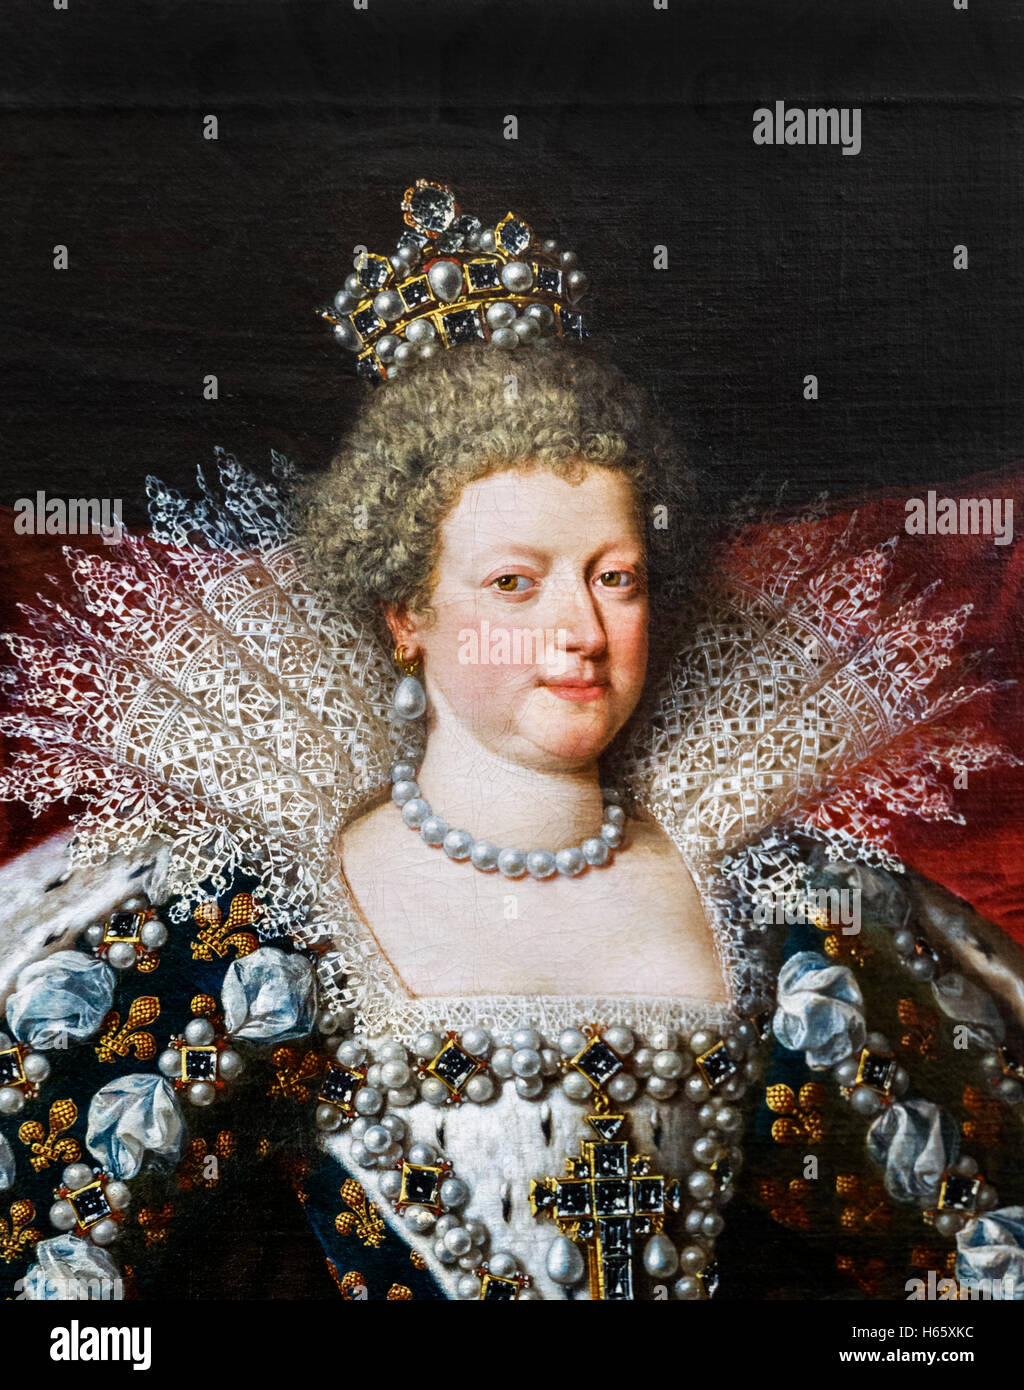 Marie de' Medici (Marie de Médicis: 1575-1642) was Queen of France as the second wife of King Henry IV - Stock Image